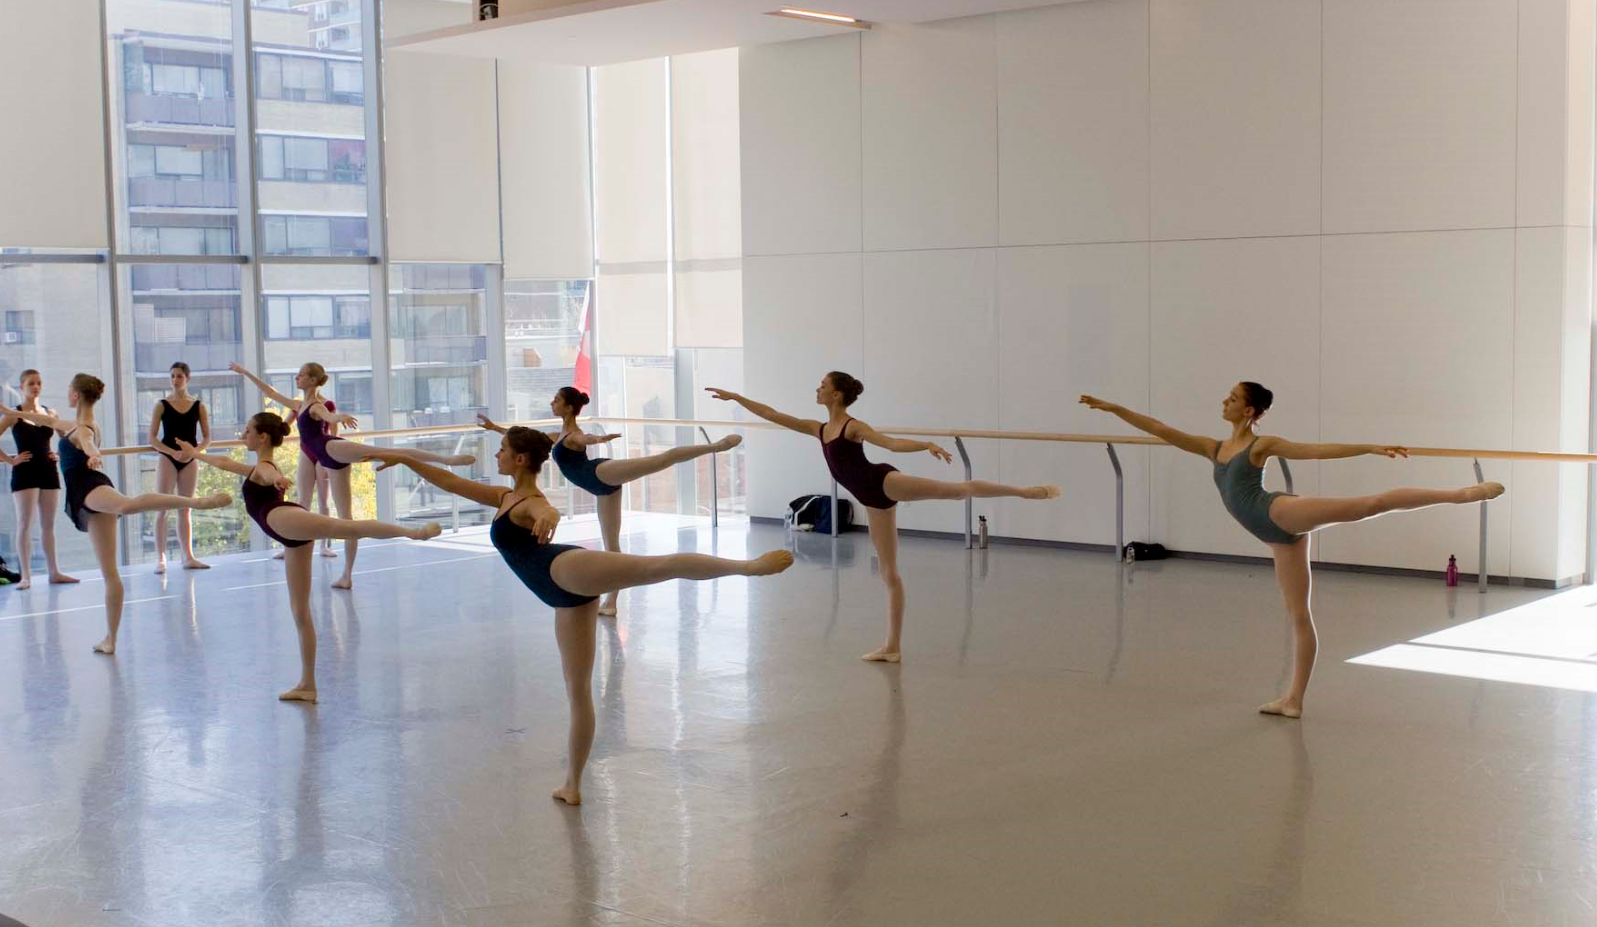 A rehearsal during AI 09 united students from professional ballet schools around the world in NBS' studios.